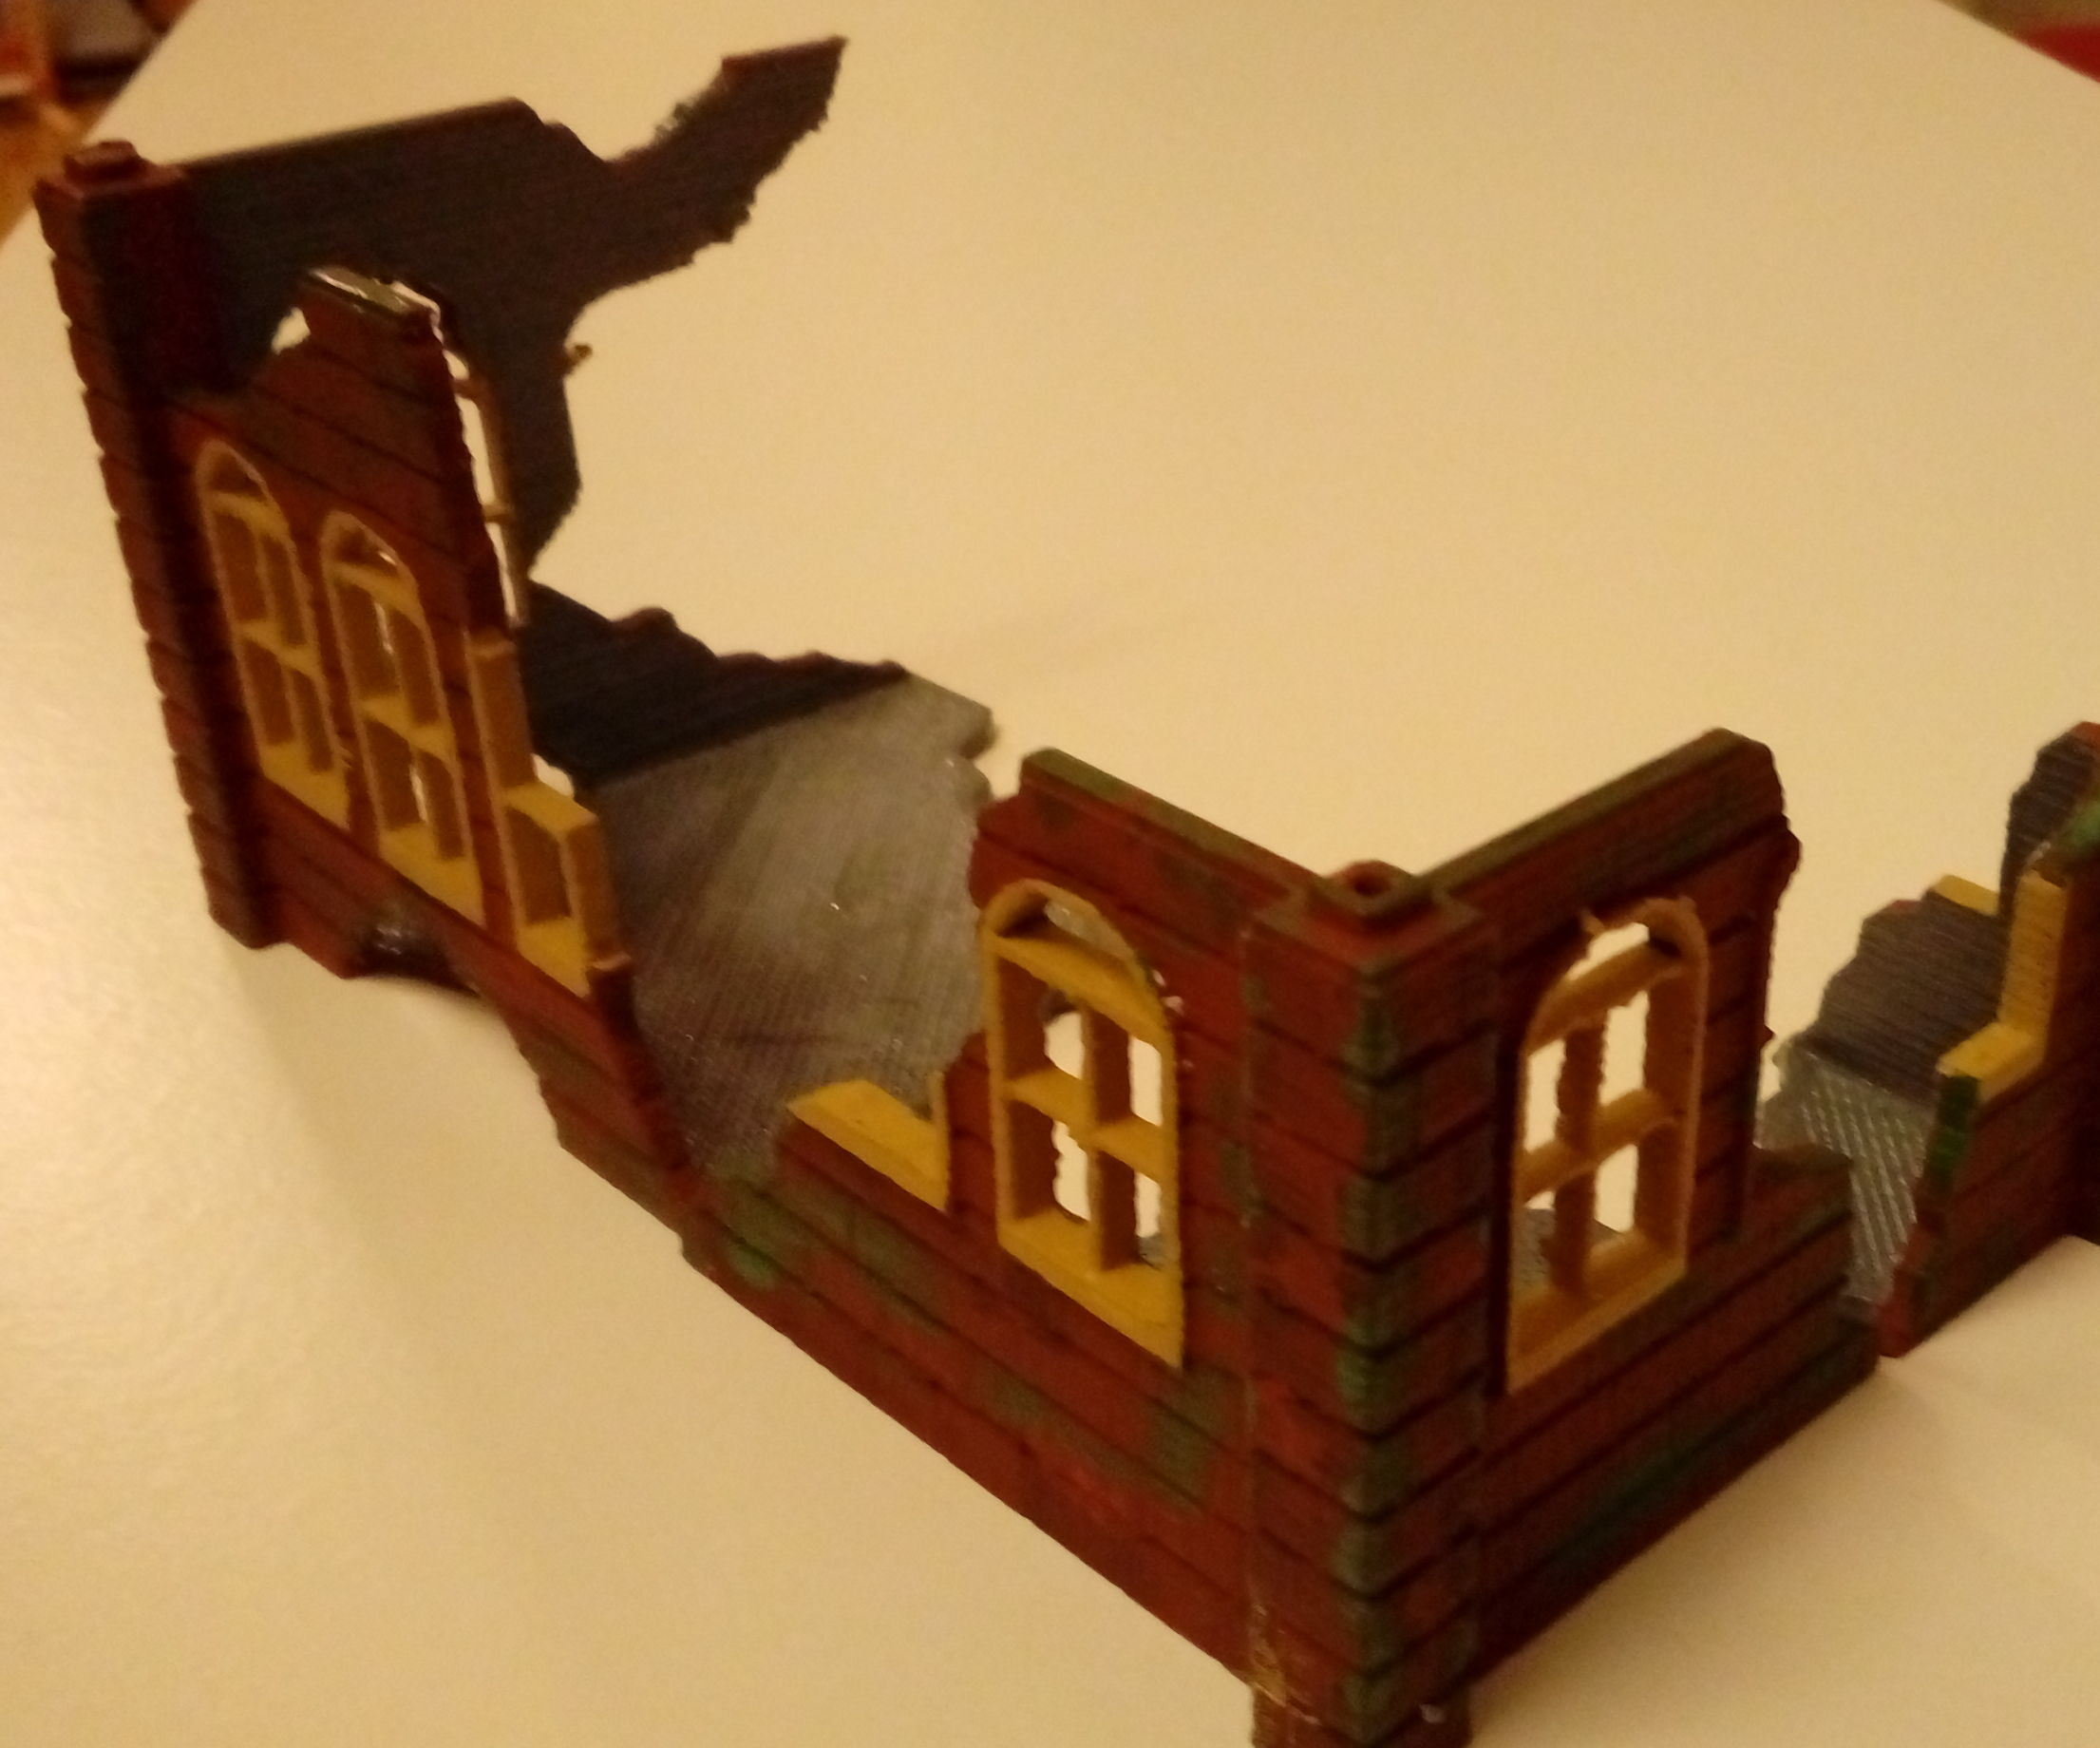 3d Print a Building / Obstacle / Scenery for Mini Figure Games E.g. Warhammer Etc